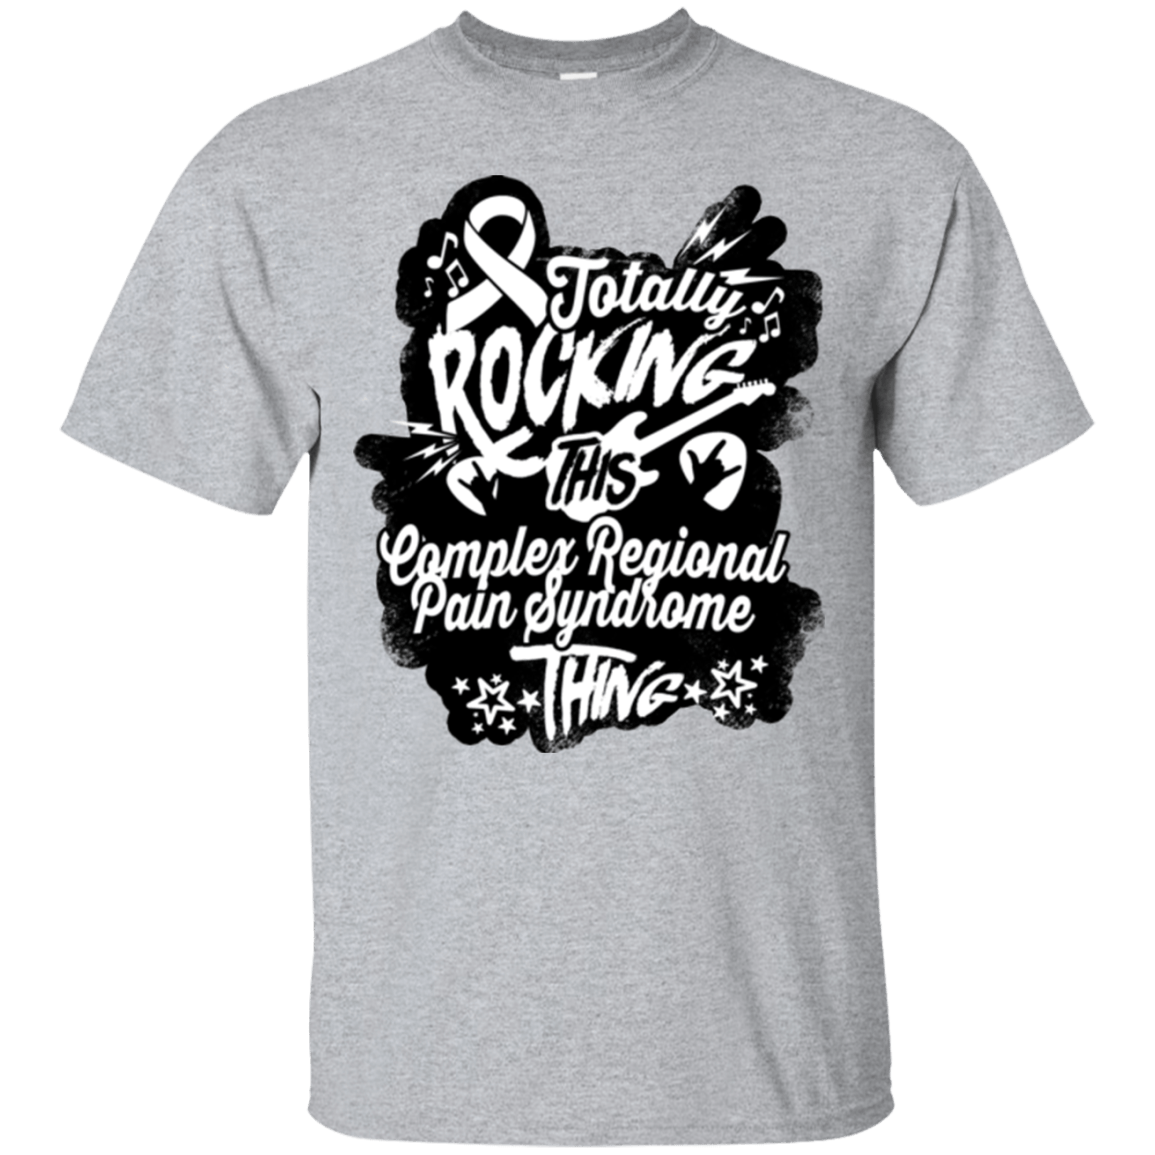 Rocking Complex Regional Pain Syndrome Unisex Shirt - The Unchargeables